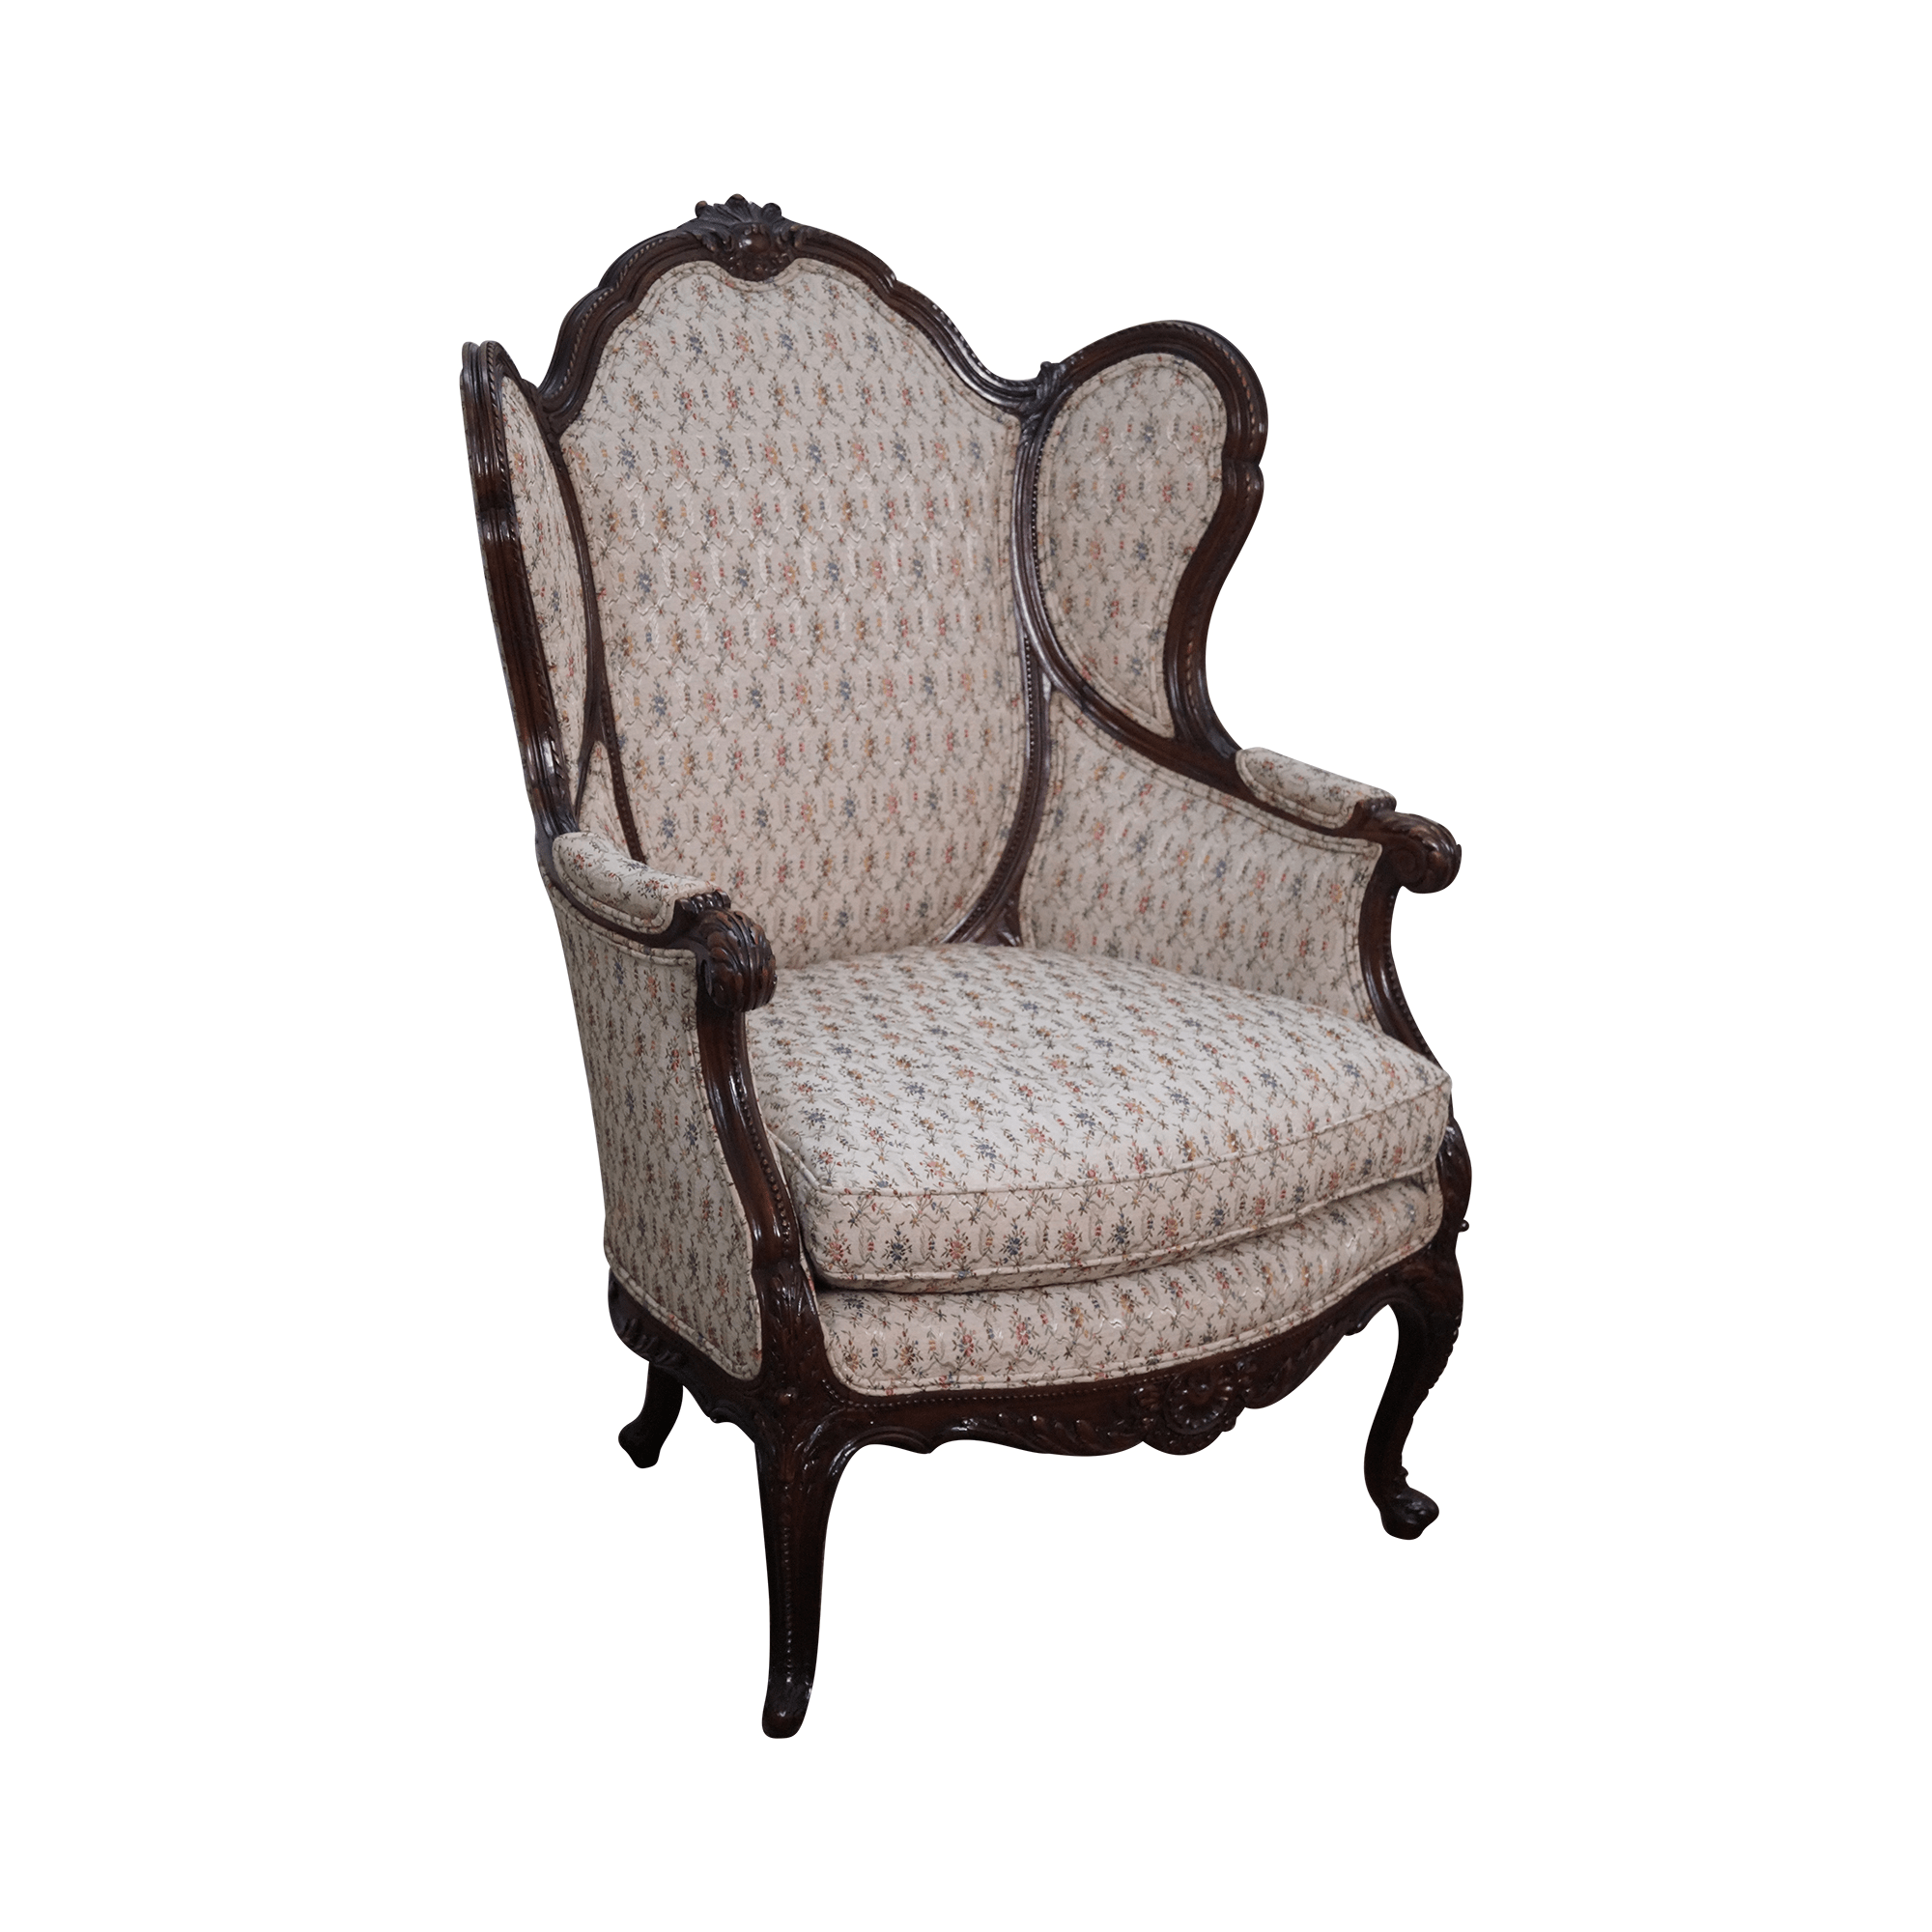 1920s rocking chair hair salon vintage french louis xv style wing chairish